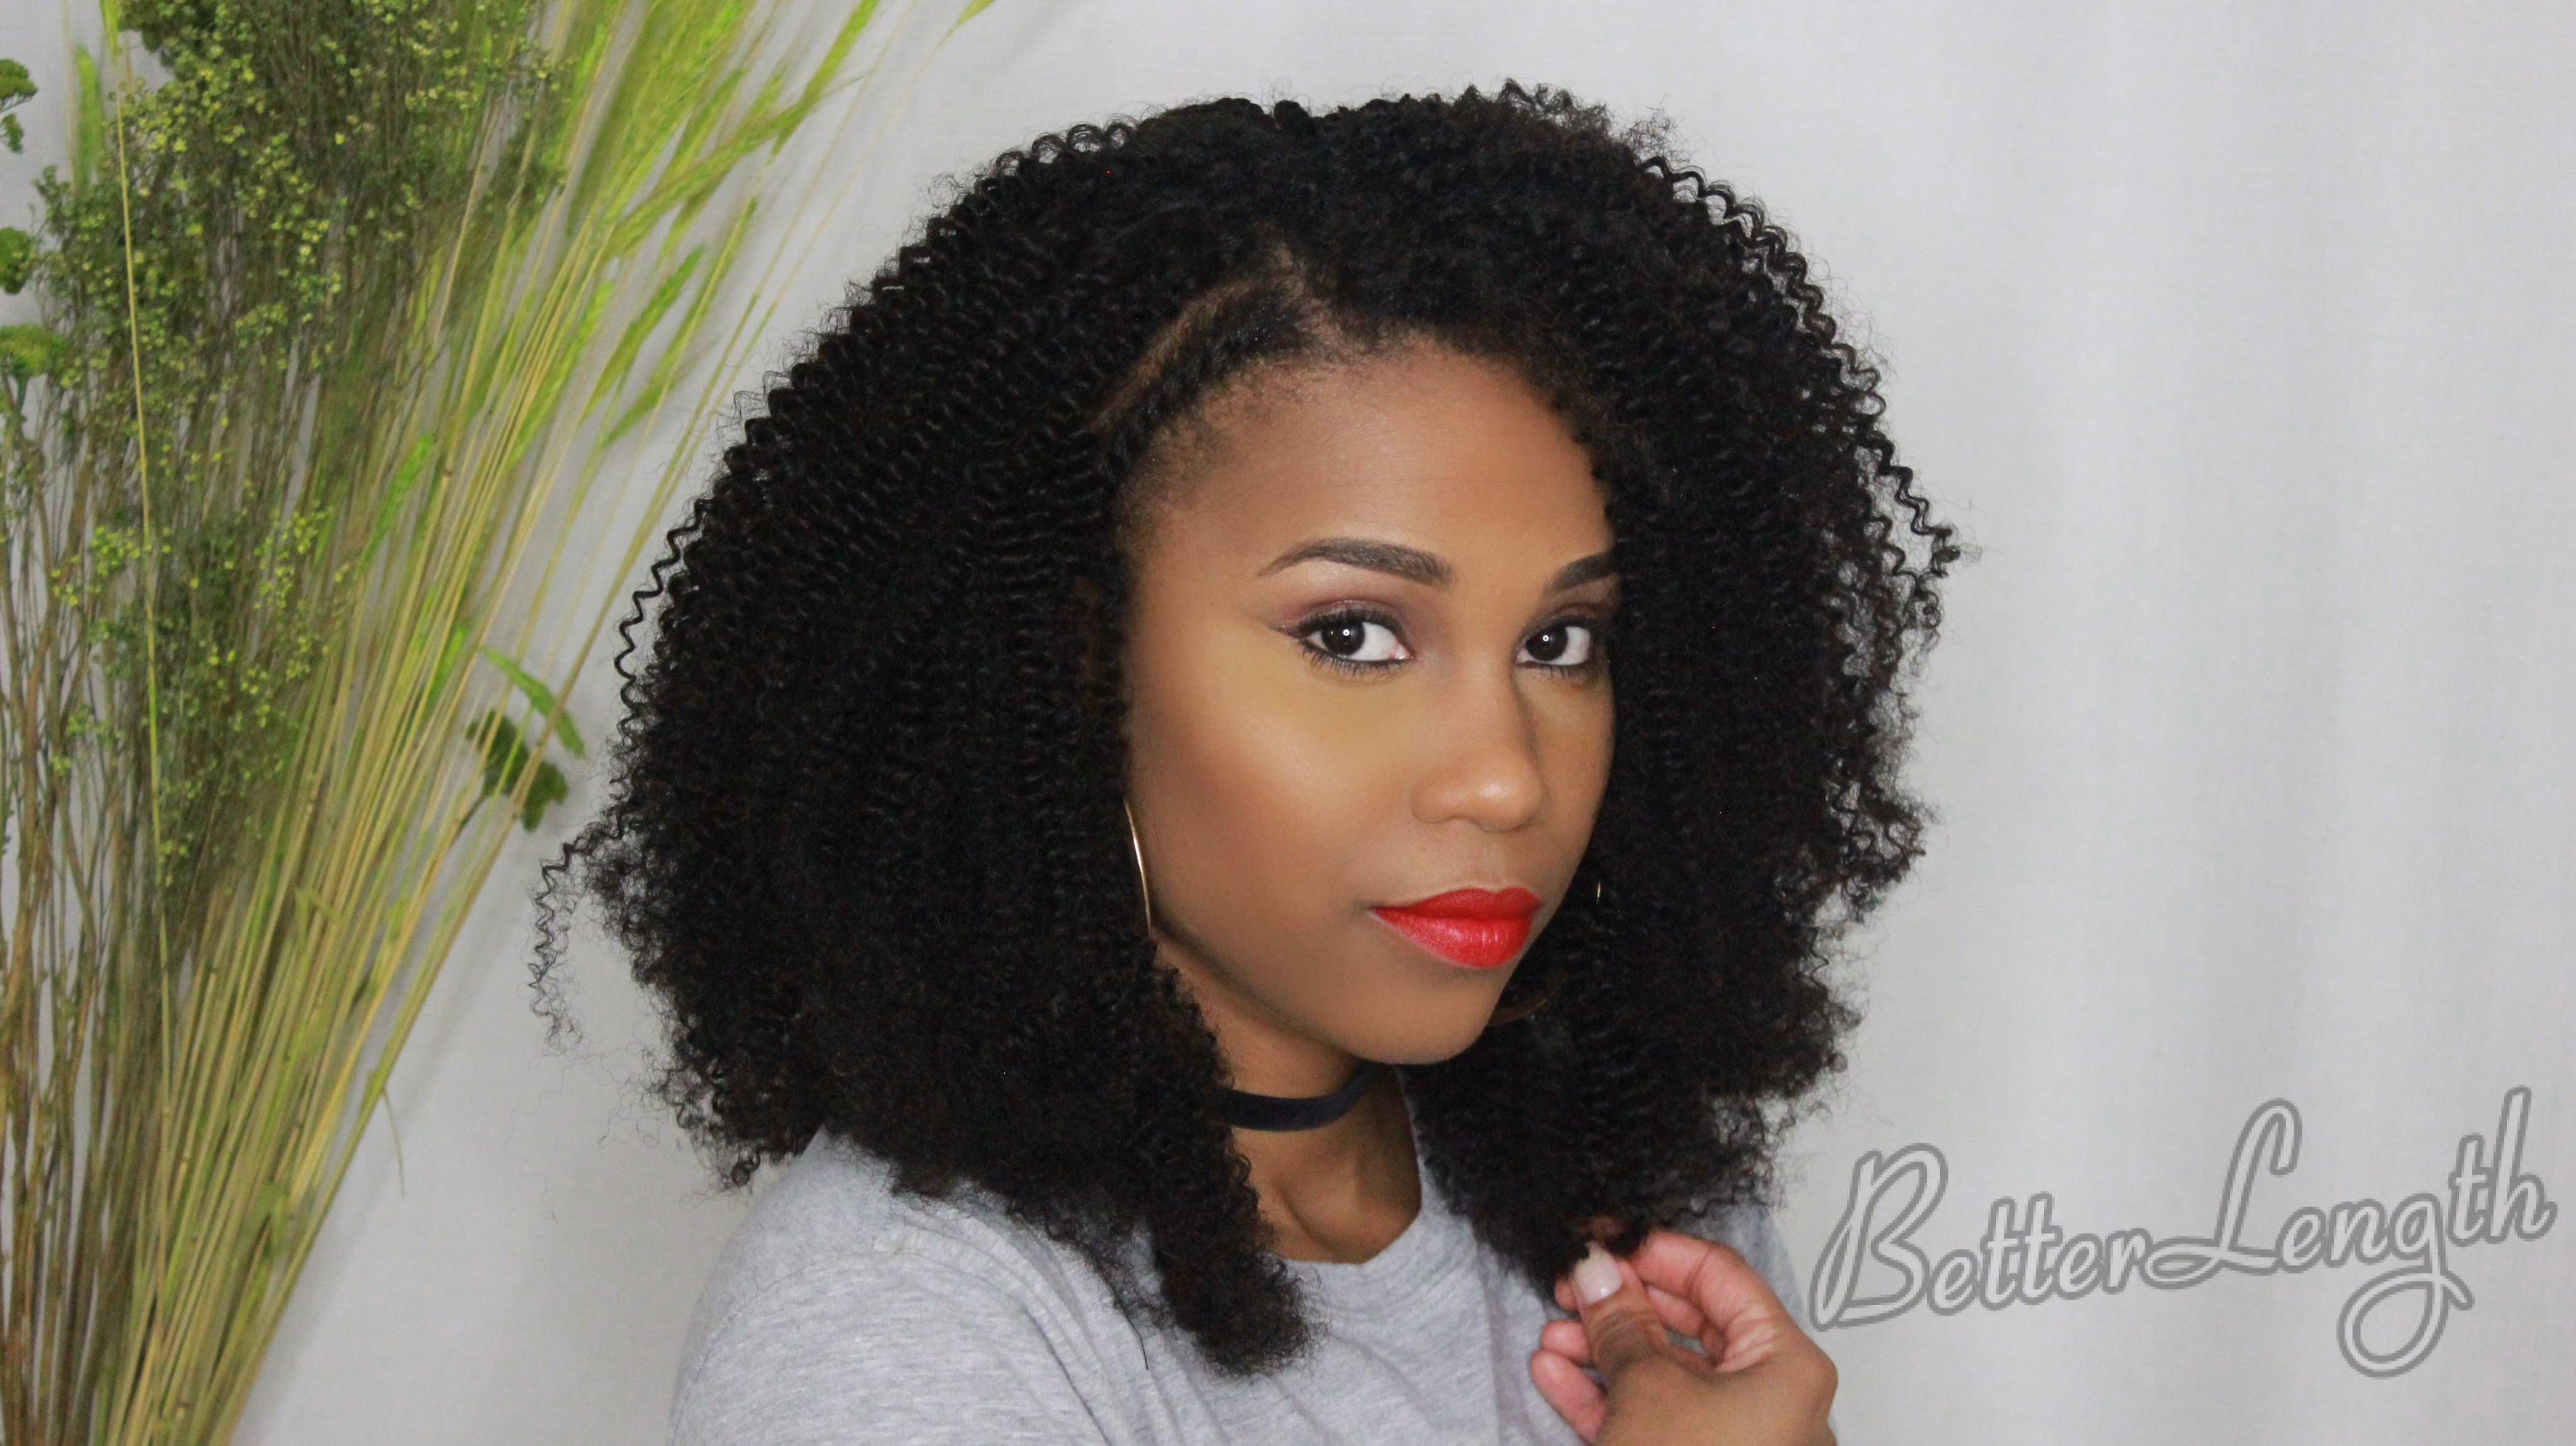 IMG 6698 3 - 5 Ways To Style Afro Kinky Curly Clip-ins For Naturals